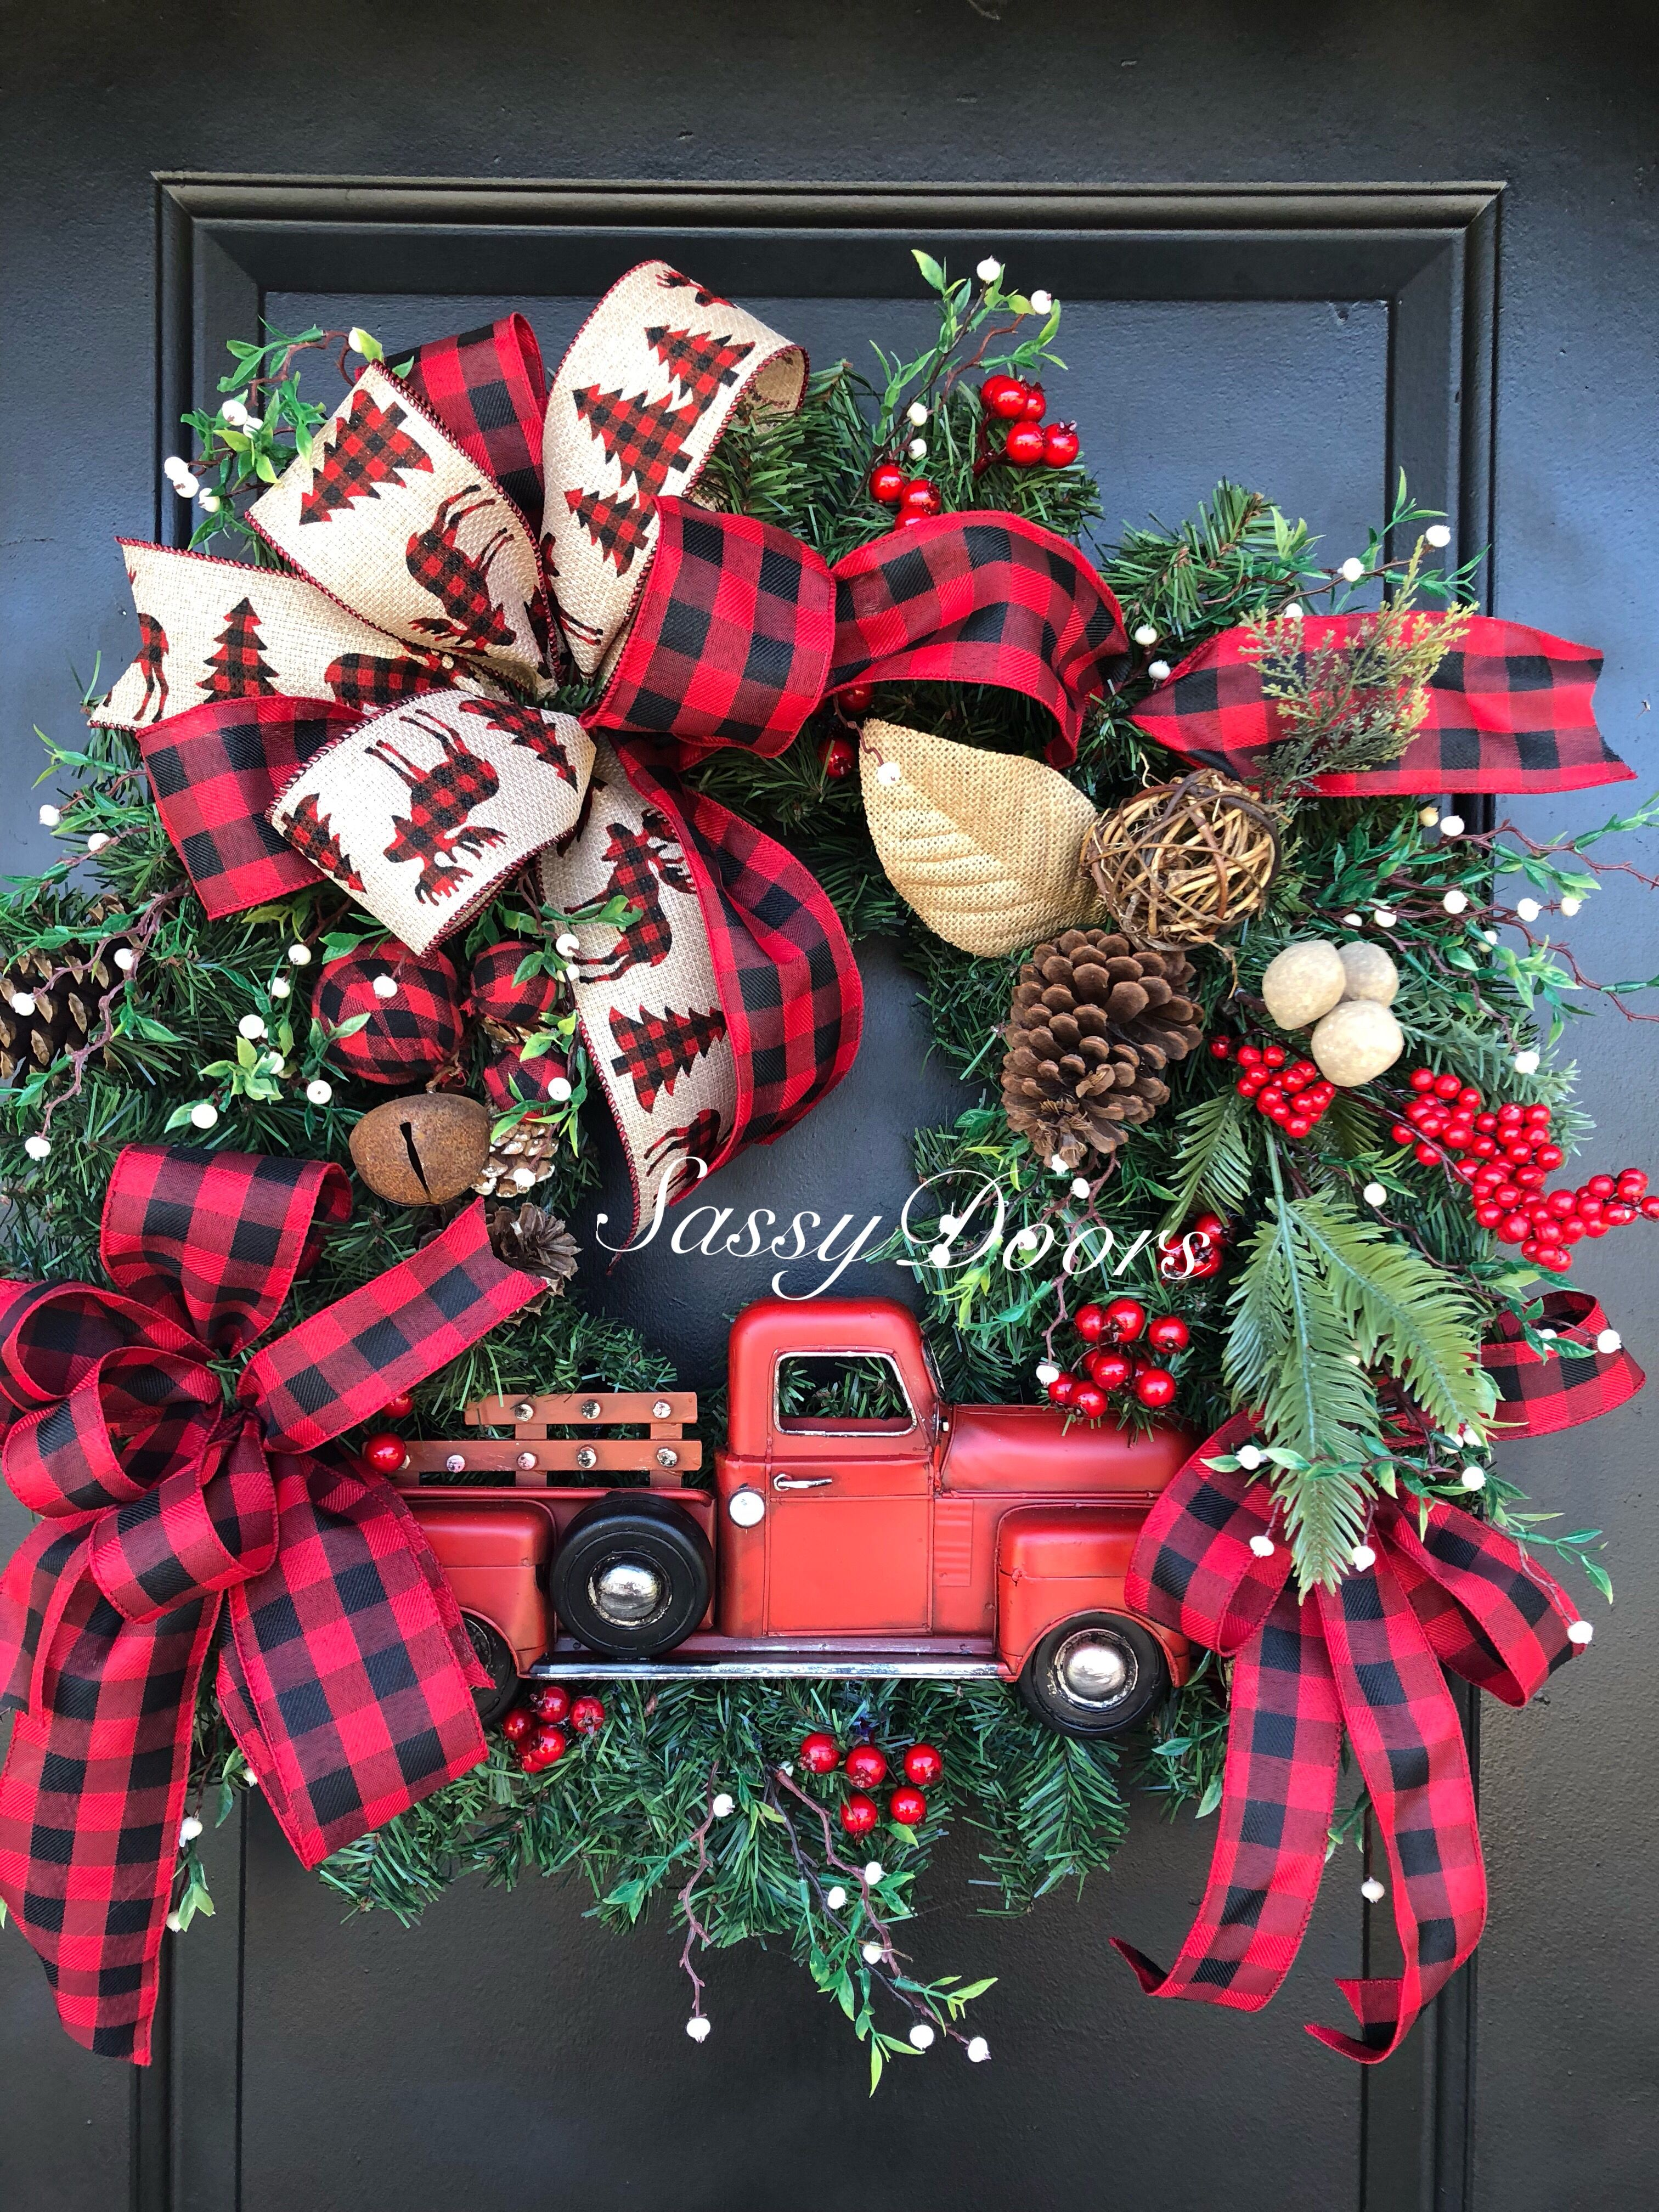 Pin by Sassy Doors on Rustic Christmas Pinterest